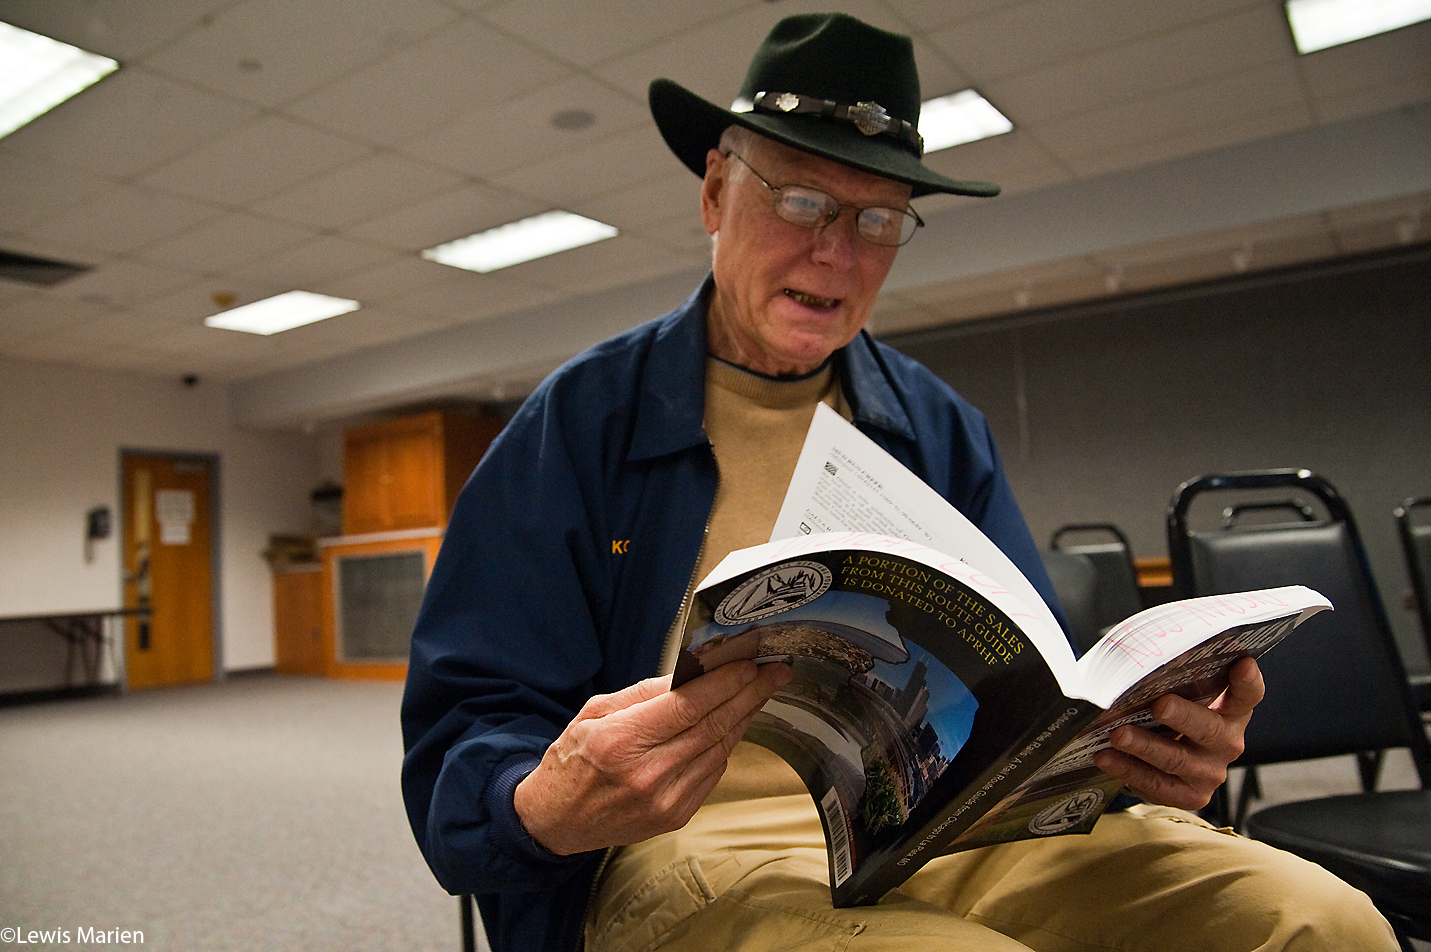 """K.C. Hill,of Galesburg, Ill.,looks through a copy of """"Outside the Rails: A Rail Route Guide from Chicago to La Plata, Mo.,"""" Nov. 7 at the Galesburg Public Library. The book, by authors Robert and Kandace Tabern of Wadsworth, Ill., explores in great detail the sights that passengers see out their train windows when passing through Illinois, Iowa, and Missouri aboard Amtrak's Southwest Chief train out of Chicago."""